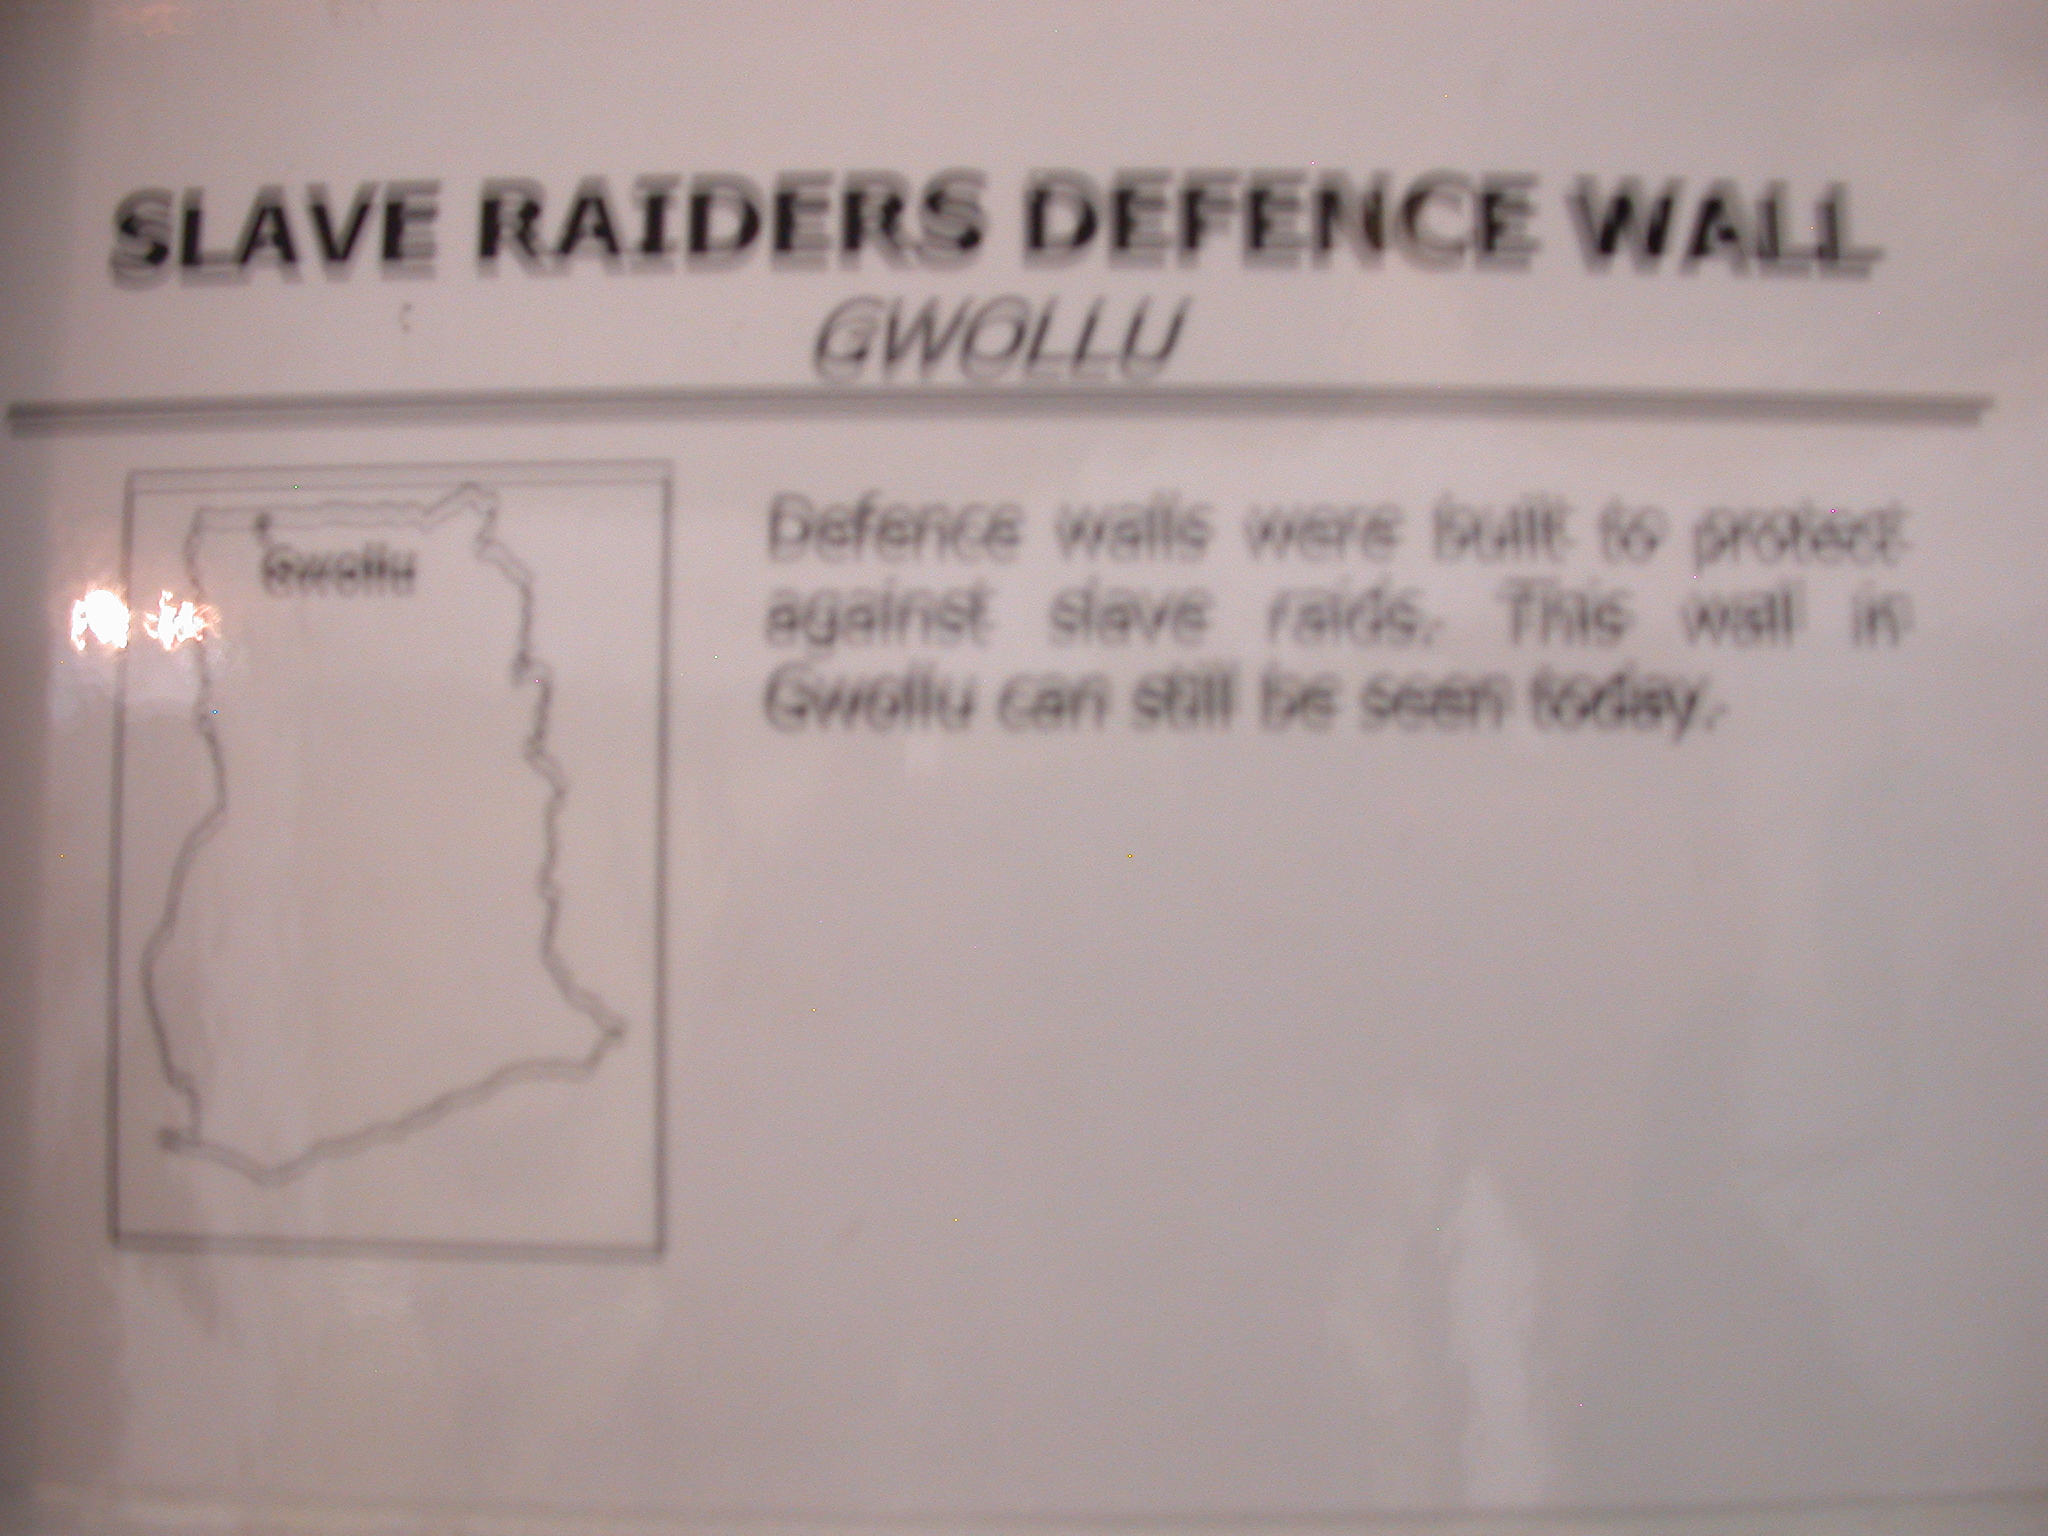 Blurry Label for Picture of Slave Raiders Defense Wall, National Museum, Accra, Ghana